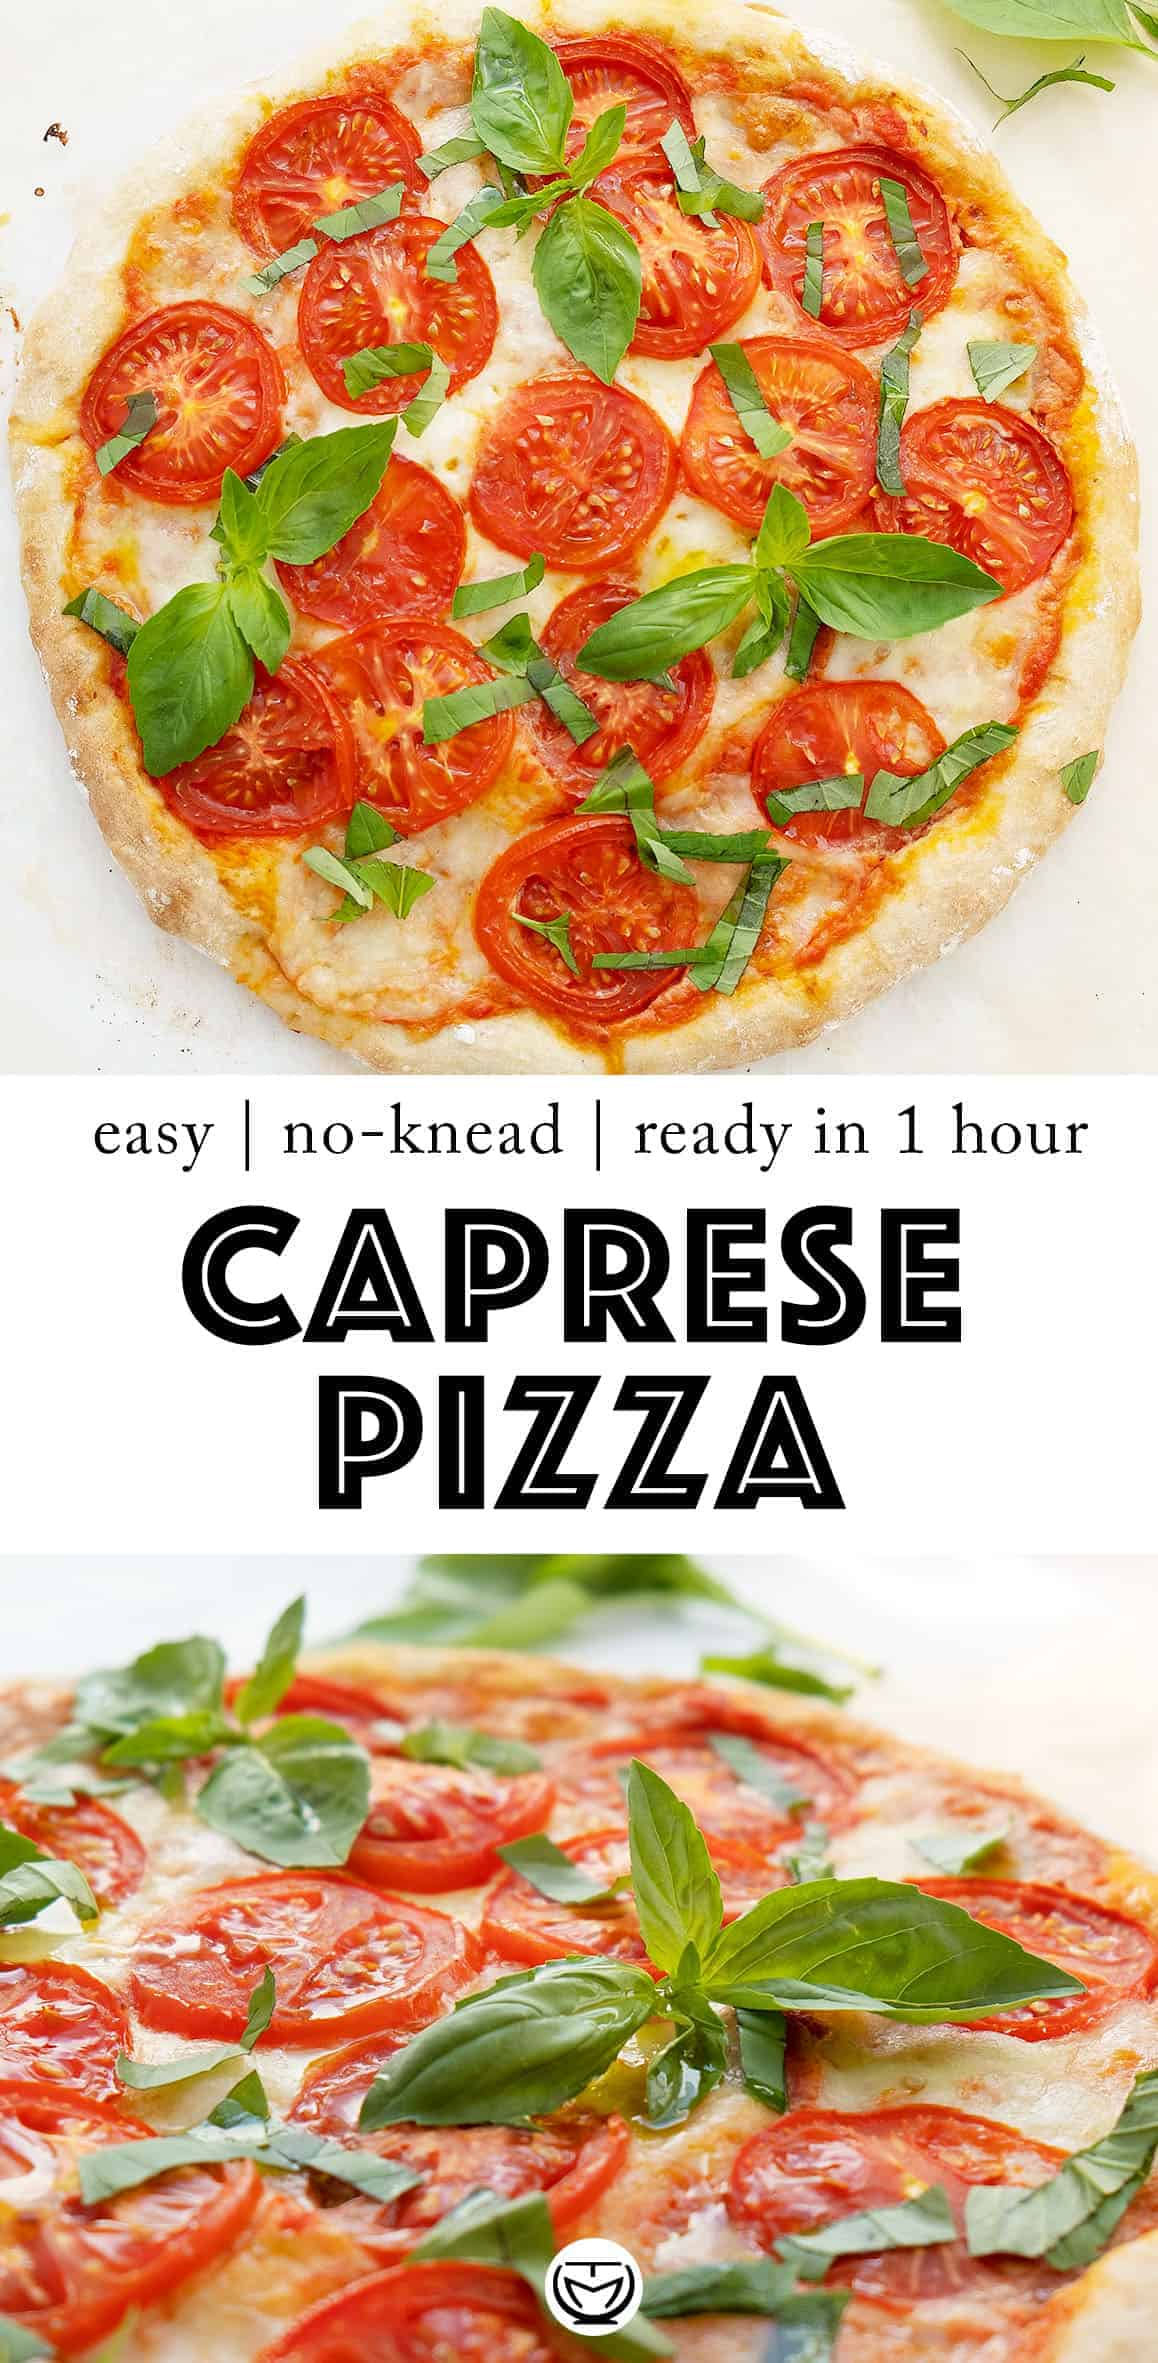 This delicious Italian caprese pizza is a dream for any pizza lover! It's ready in 1 hour and it's packed with fresh amazing flavors. #pizzarecipes